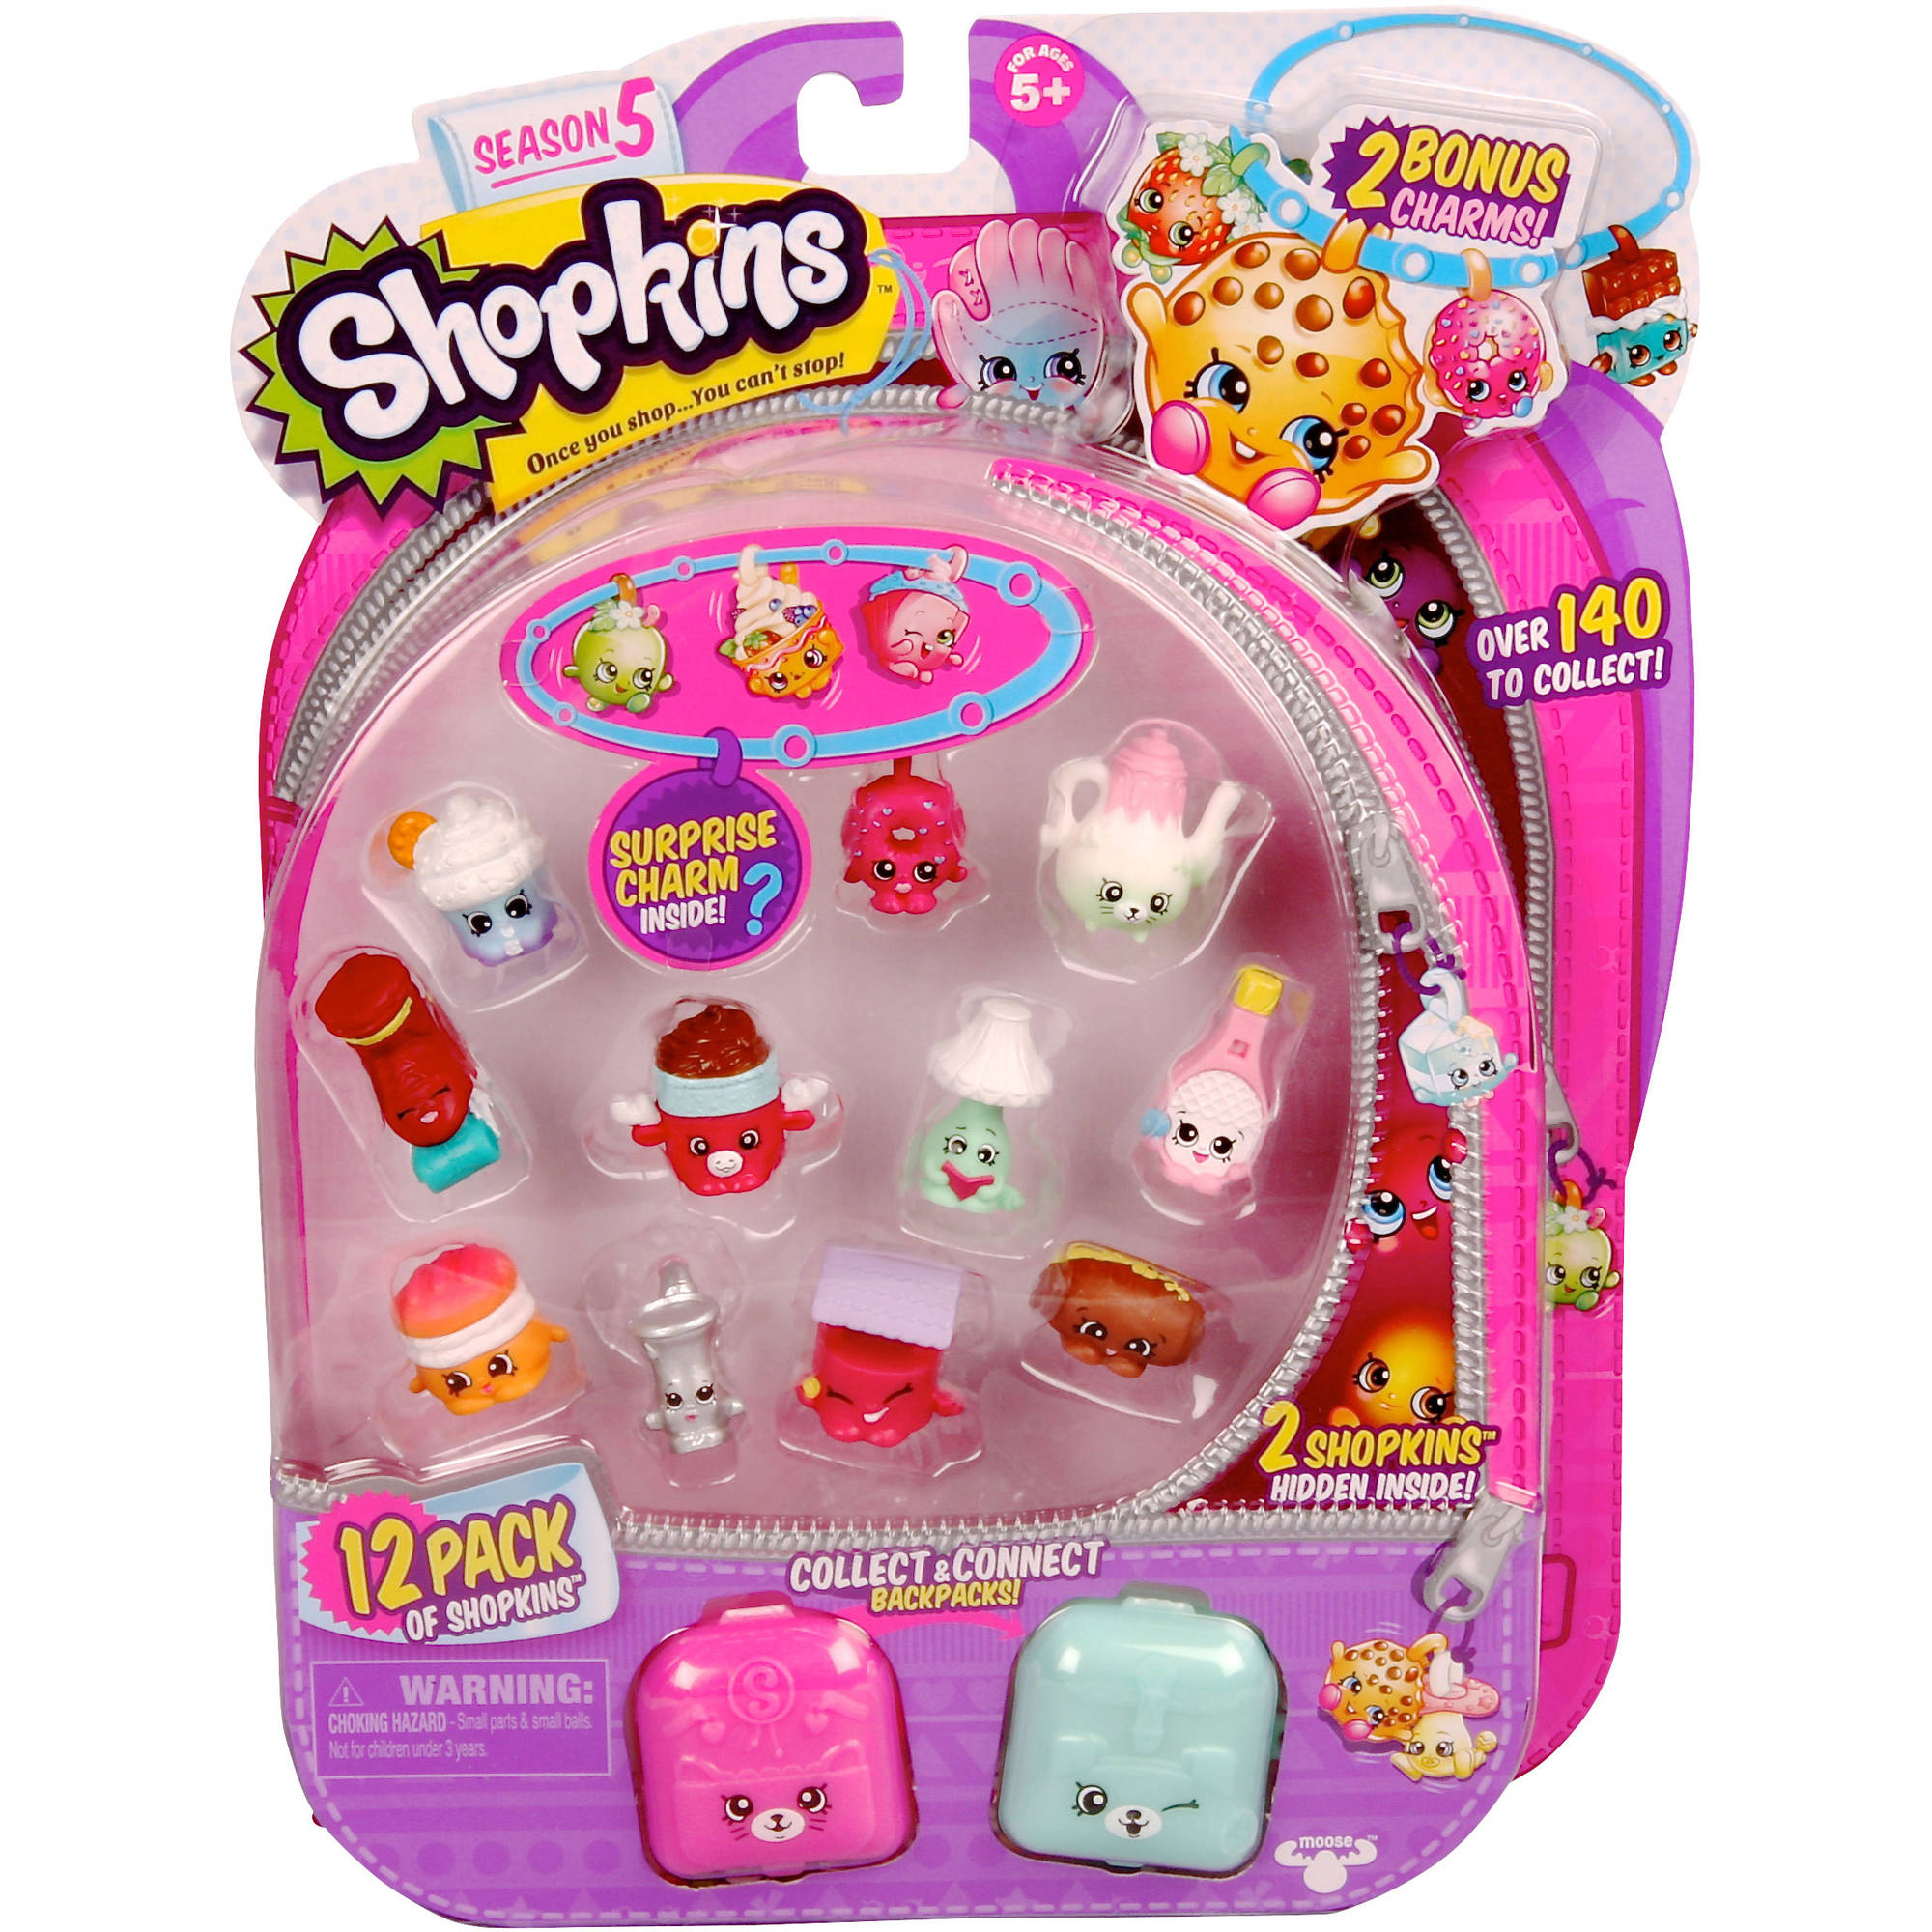 Shopkins 12pk, Season 5